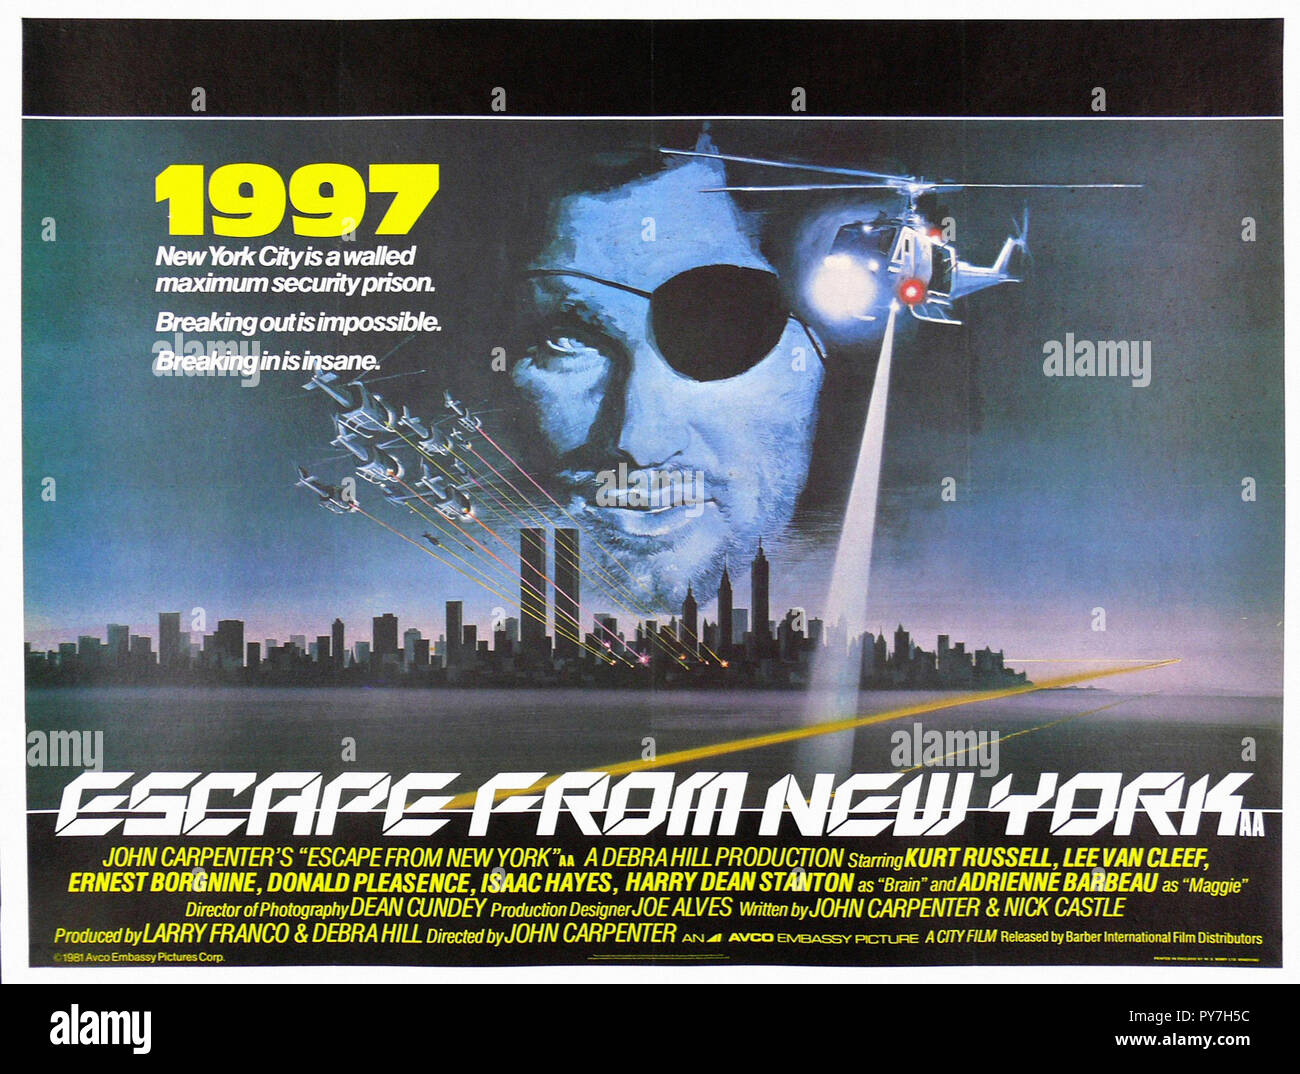 Escape From New York Poster.Escape From New York Original Movie Poster Stock Photo 223287272